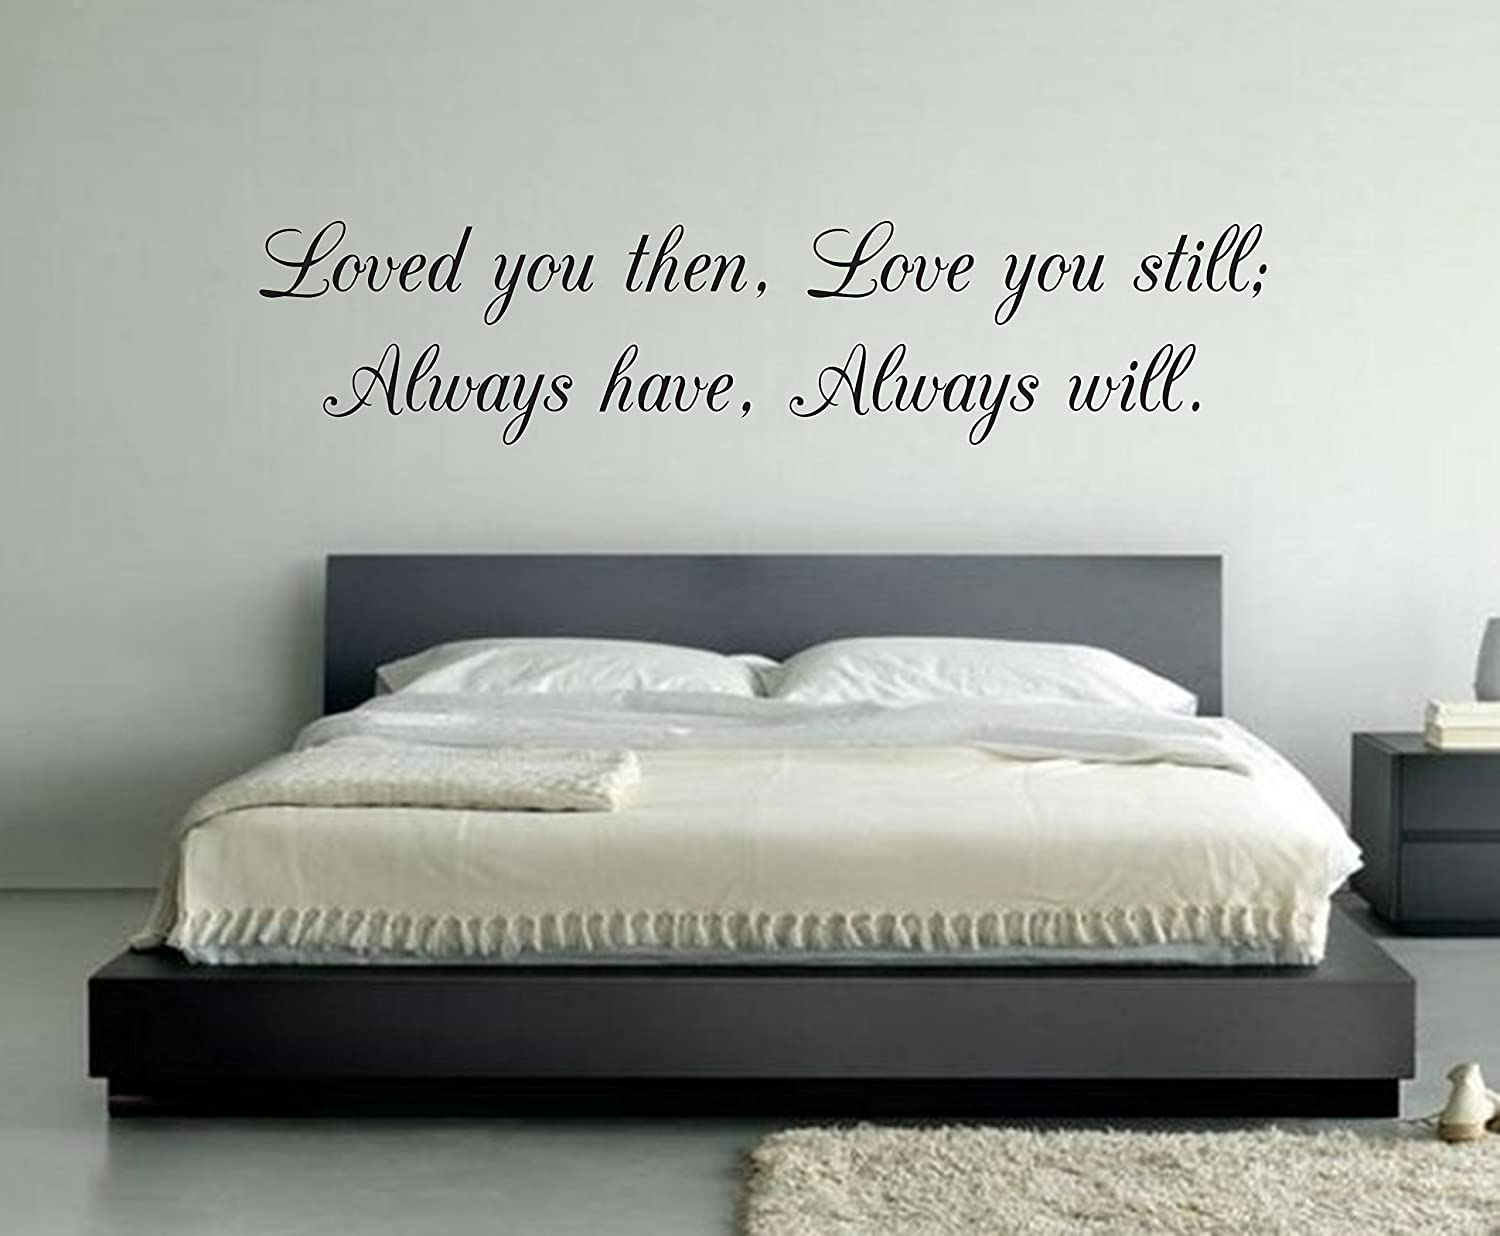 Loved you then Love you still Always have Always will Wall Decal - Bedroom  Wall Decor - Vinyl Wall...